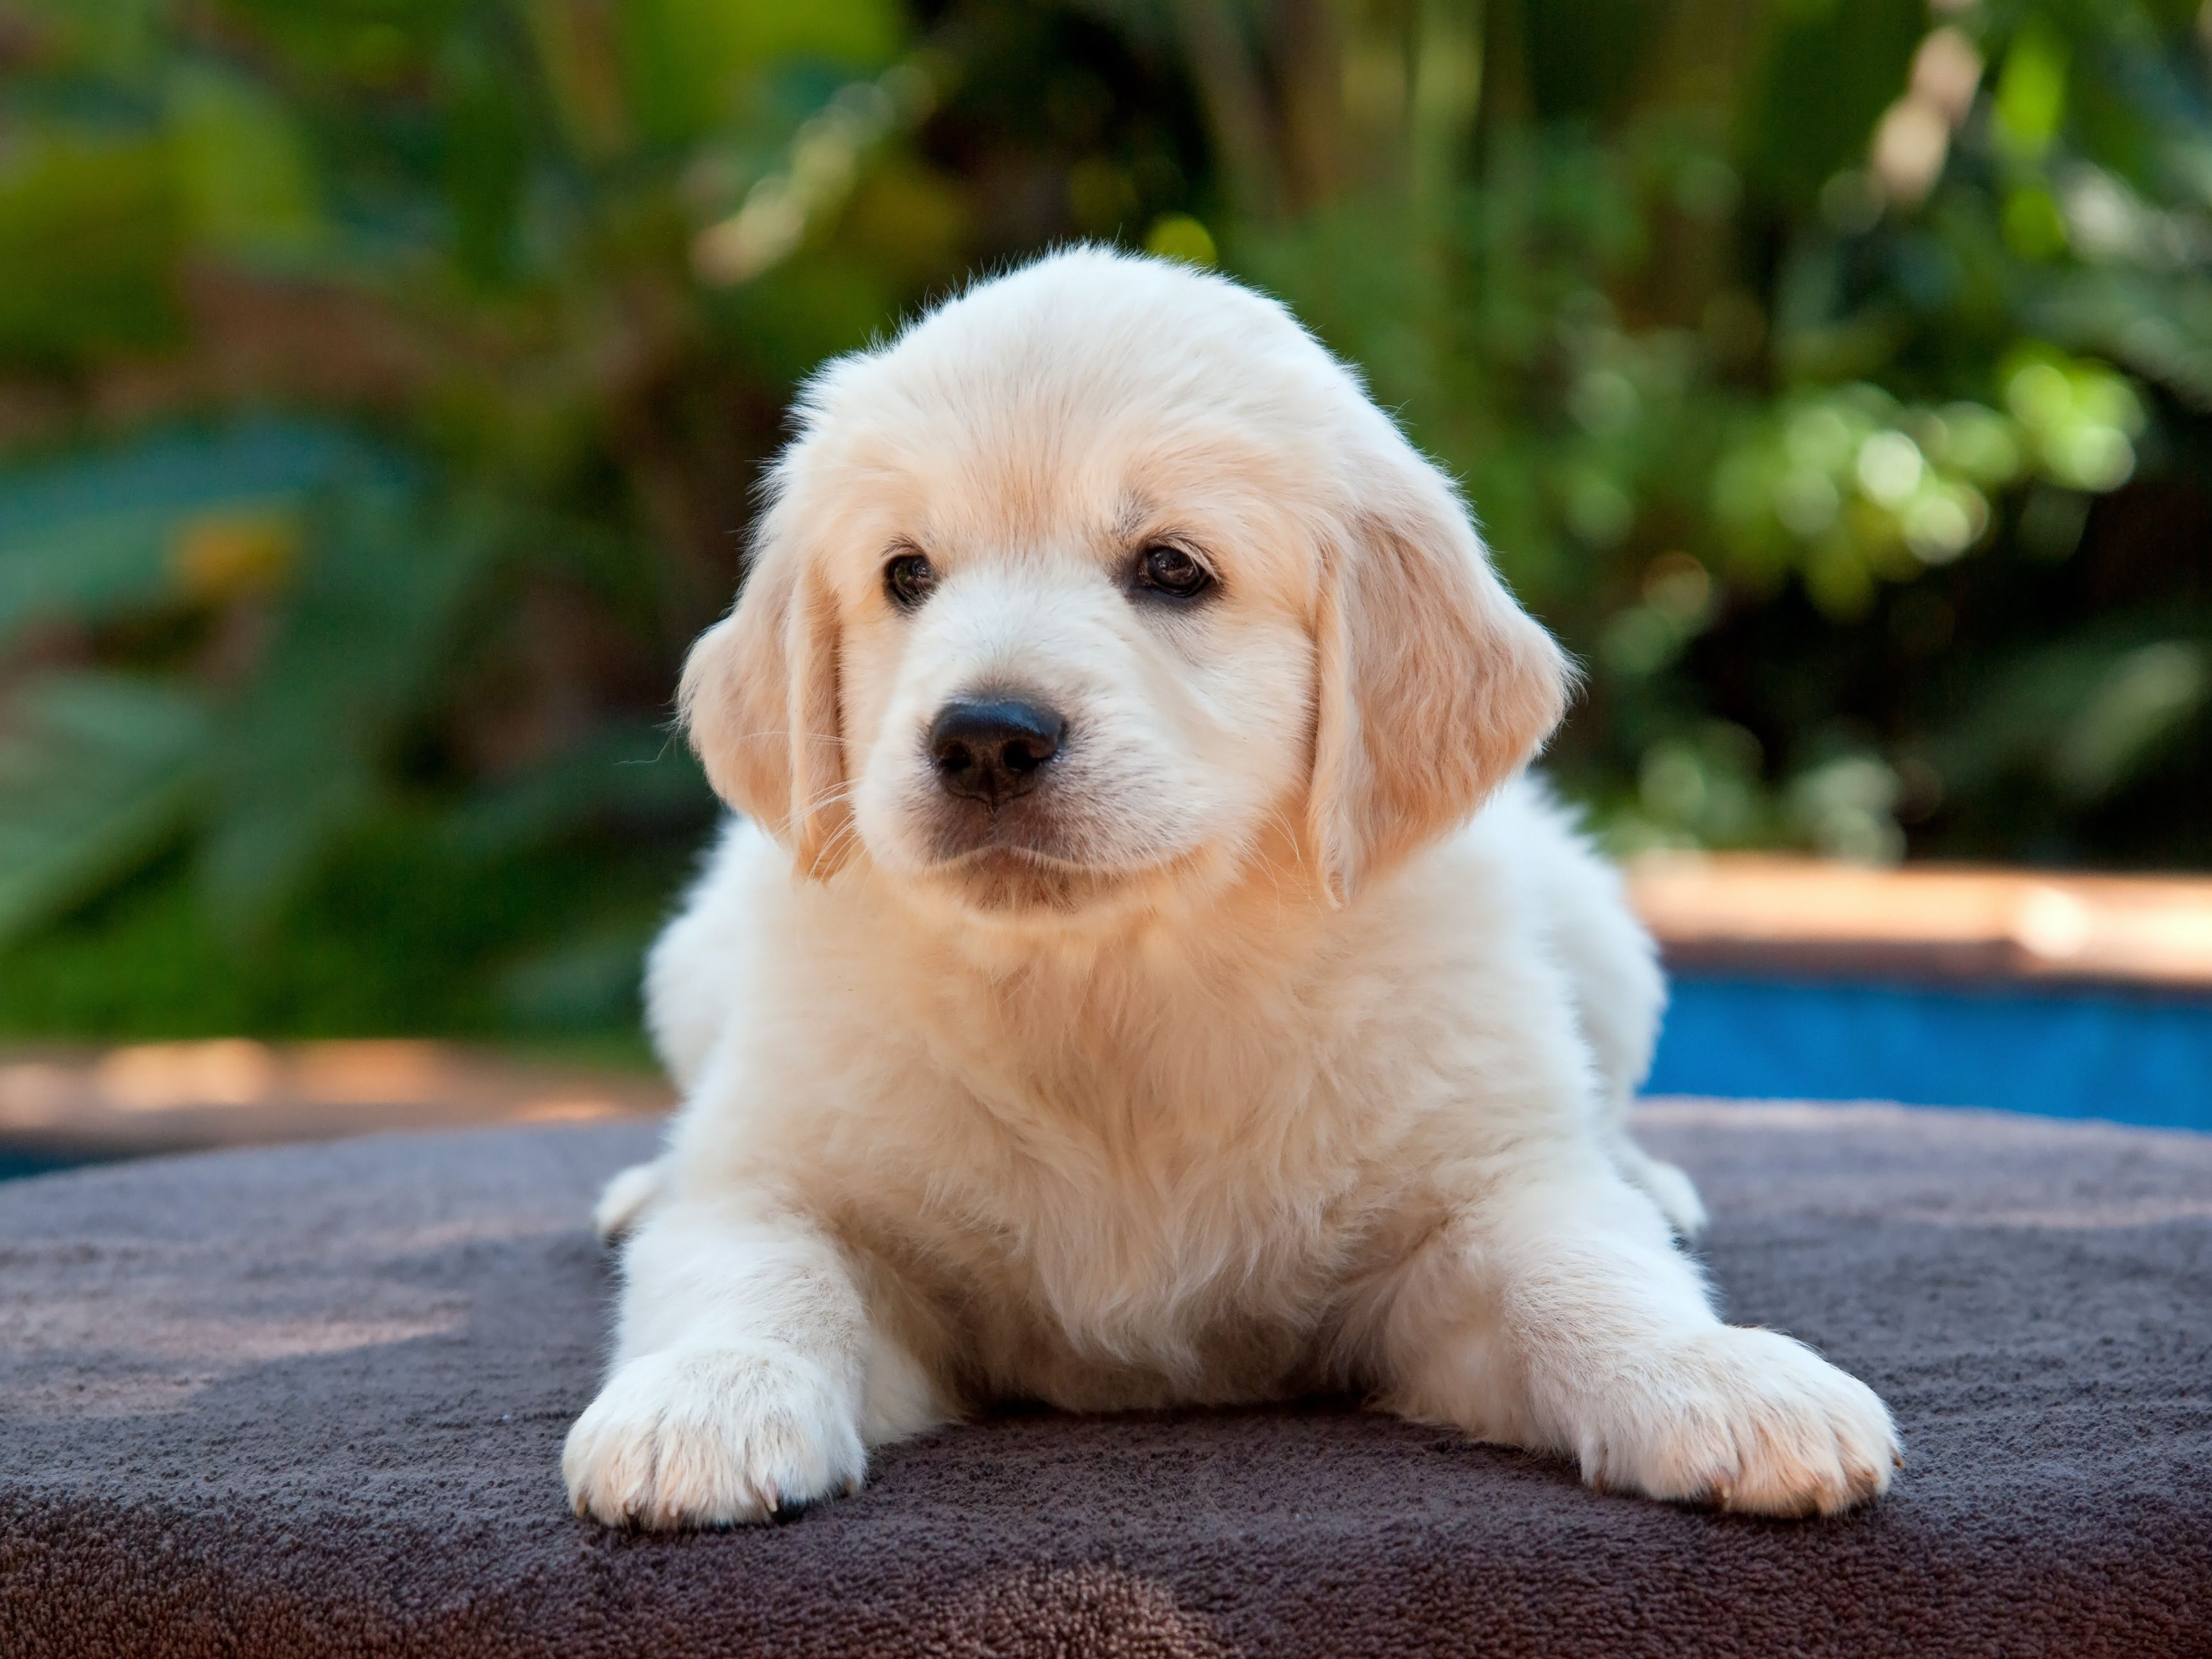 Your Welcome Picture With Puppy Cutepuppydiscover A Number Of